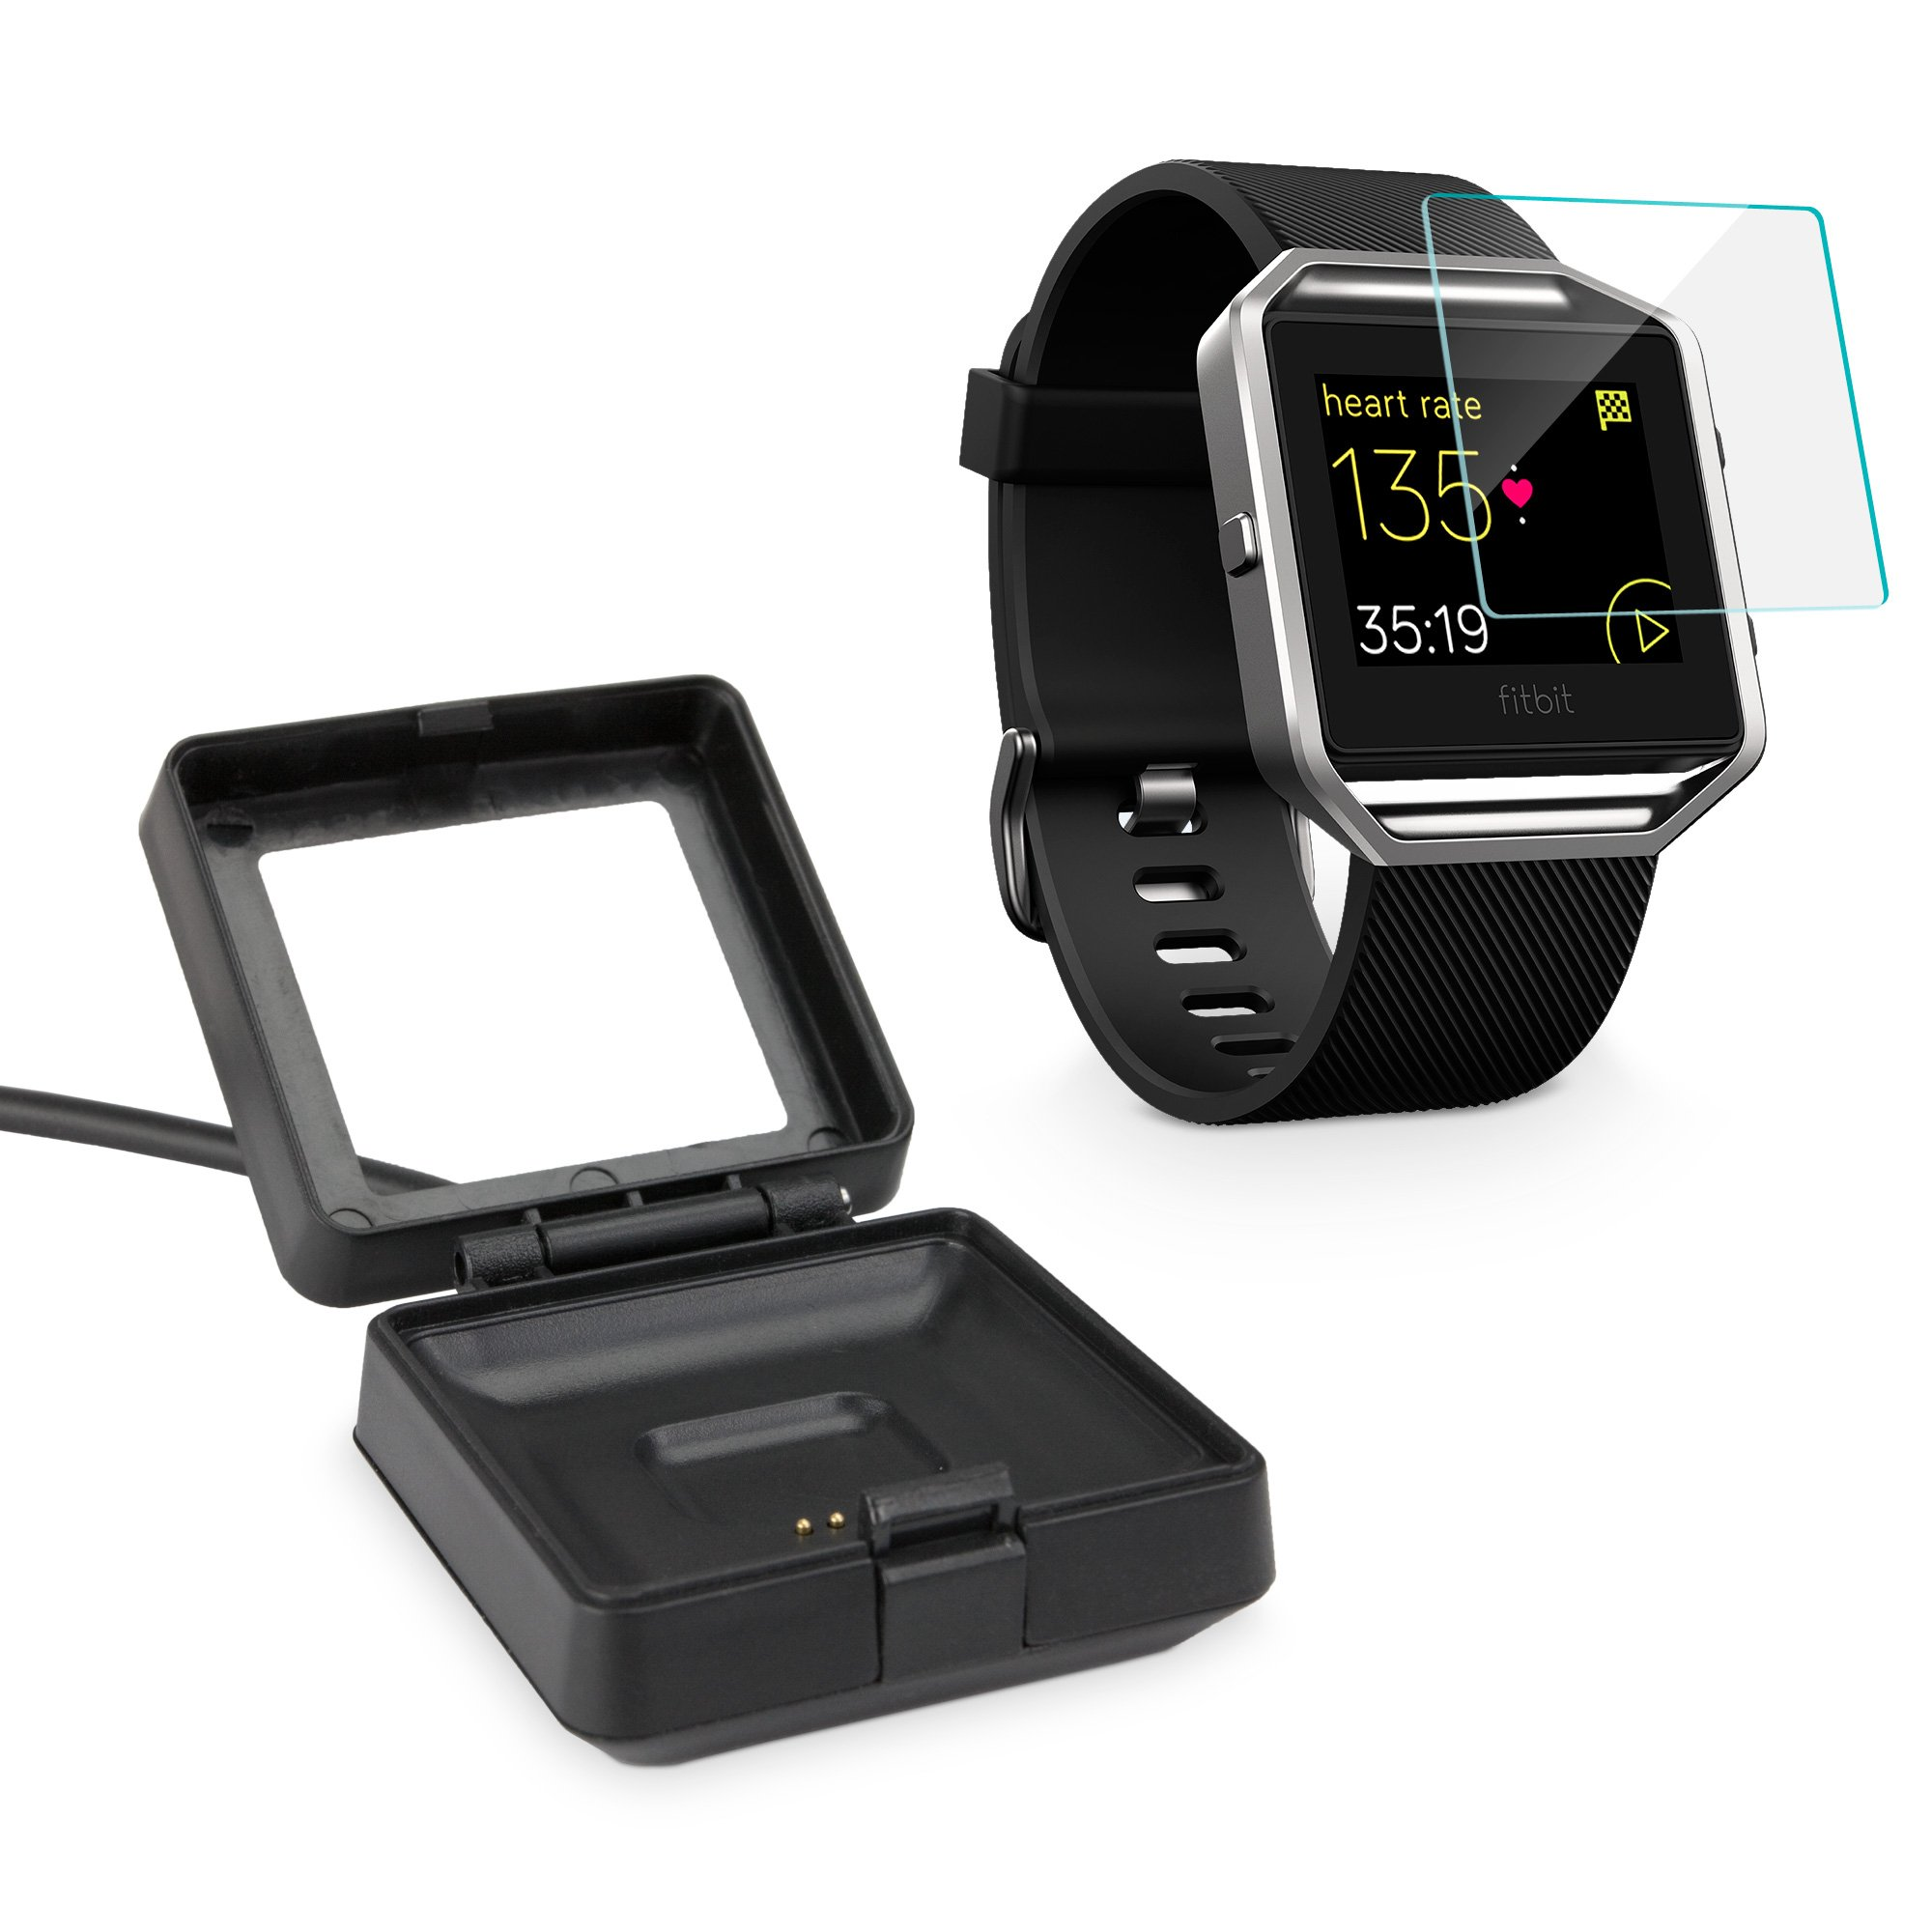 Fitbit Blaze Screen Protector, BoxWave [ClearTouch Glass + Dock] Tempered Glass Screen Protection and Charging Dock for Fitbit Blaze - Jet Black